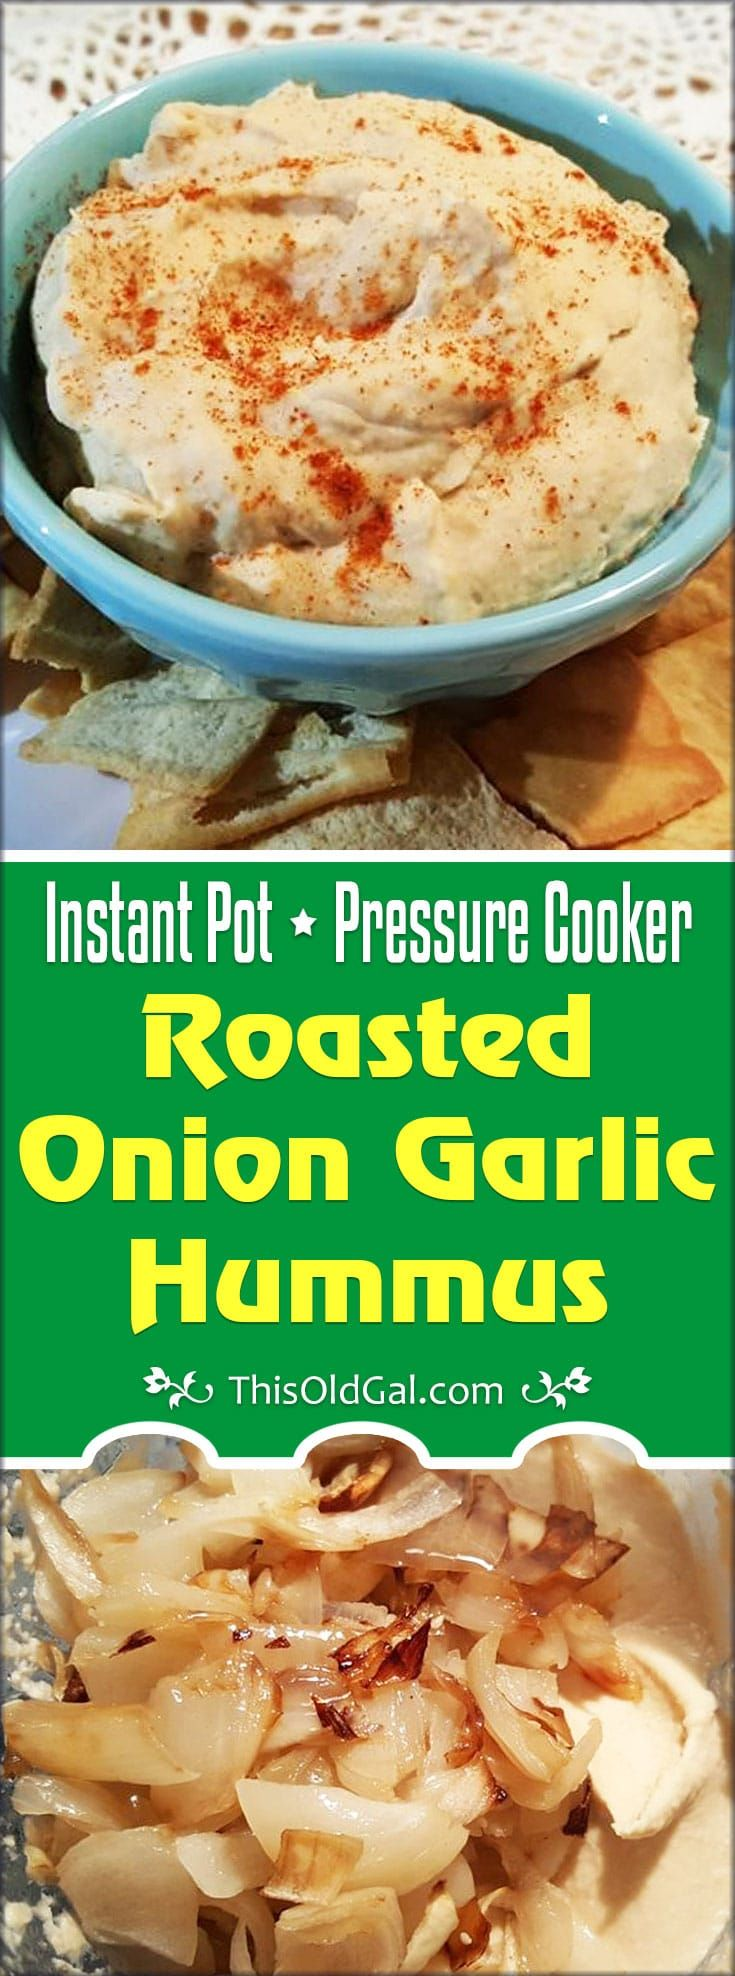 This Mediterranean Pressure Cooker Roasted Onion Garlic Hummus made with Ghee and Homemade Tahini, is creamy and delicious. via @thisoldgalcooks